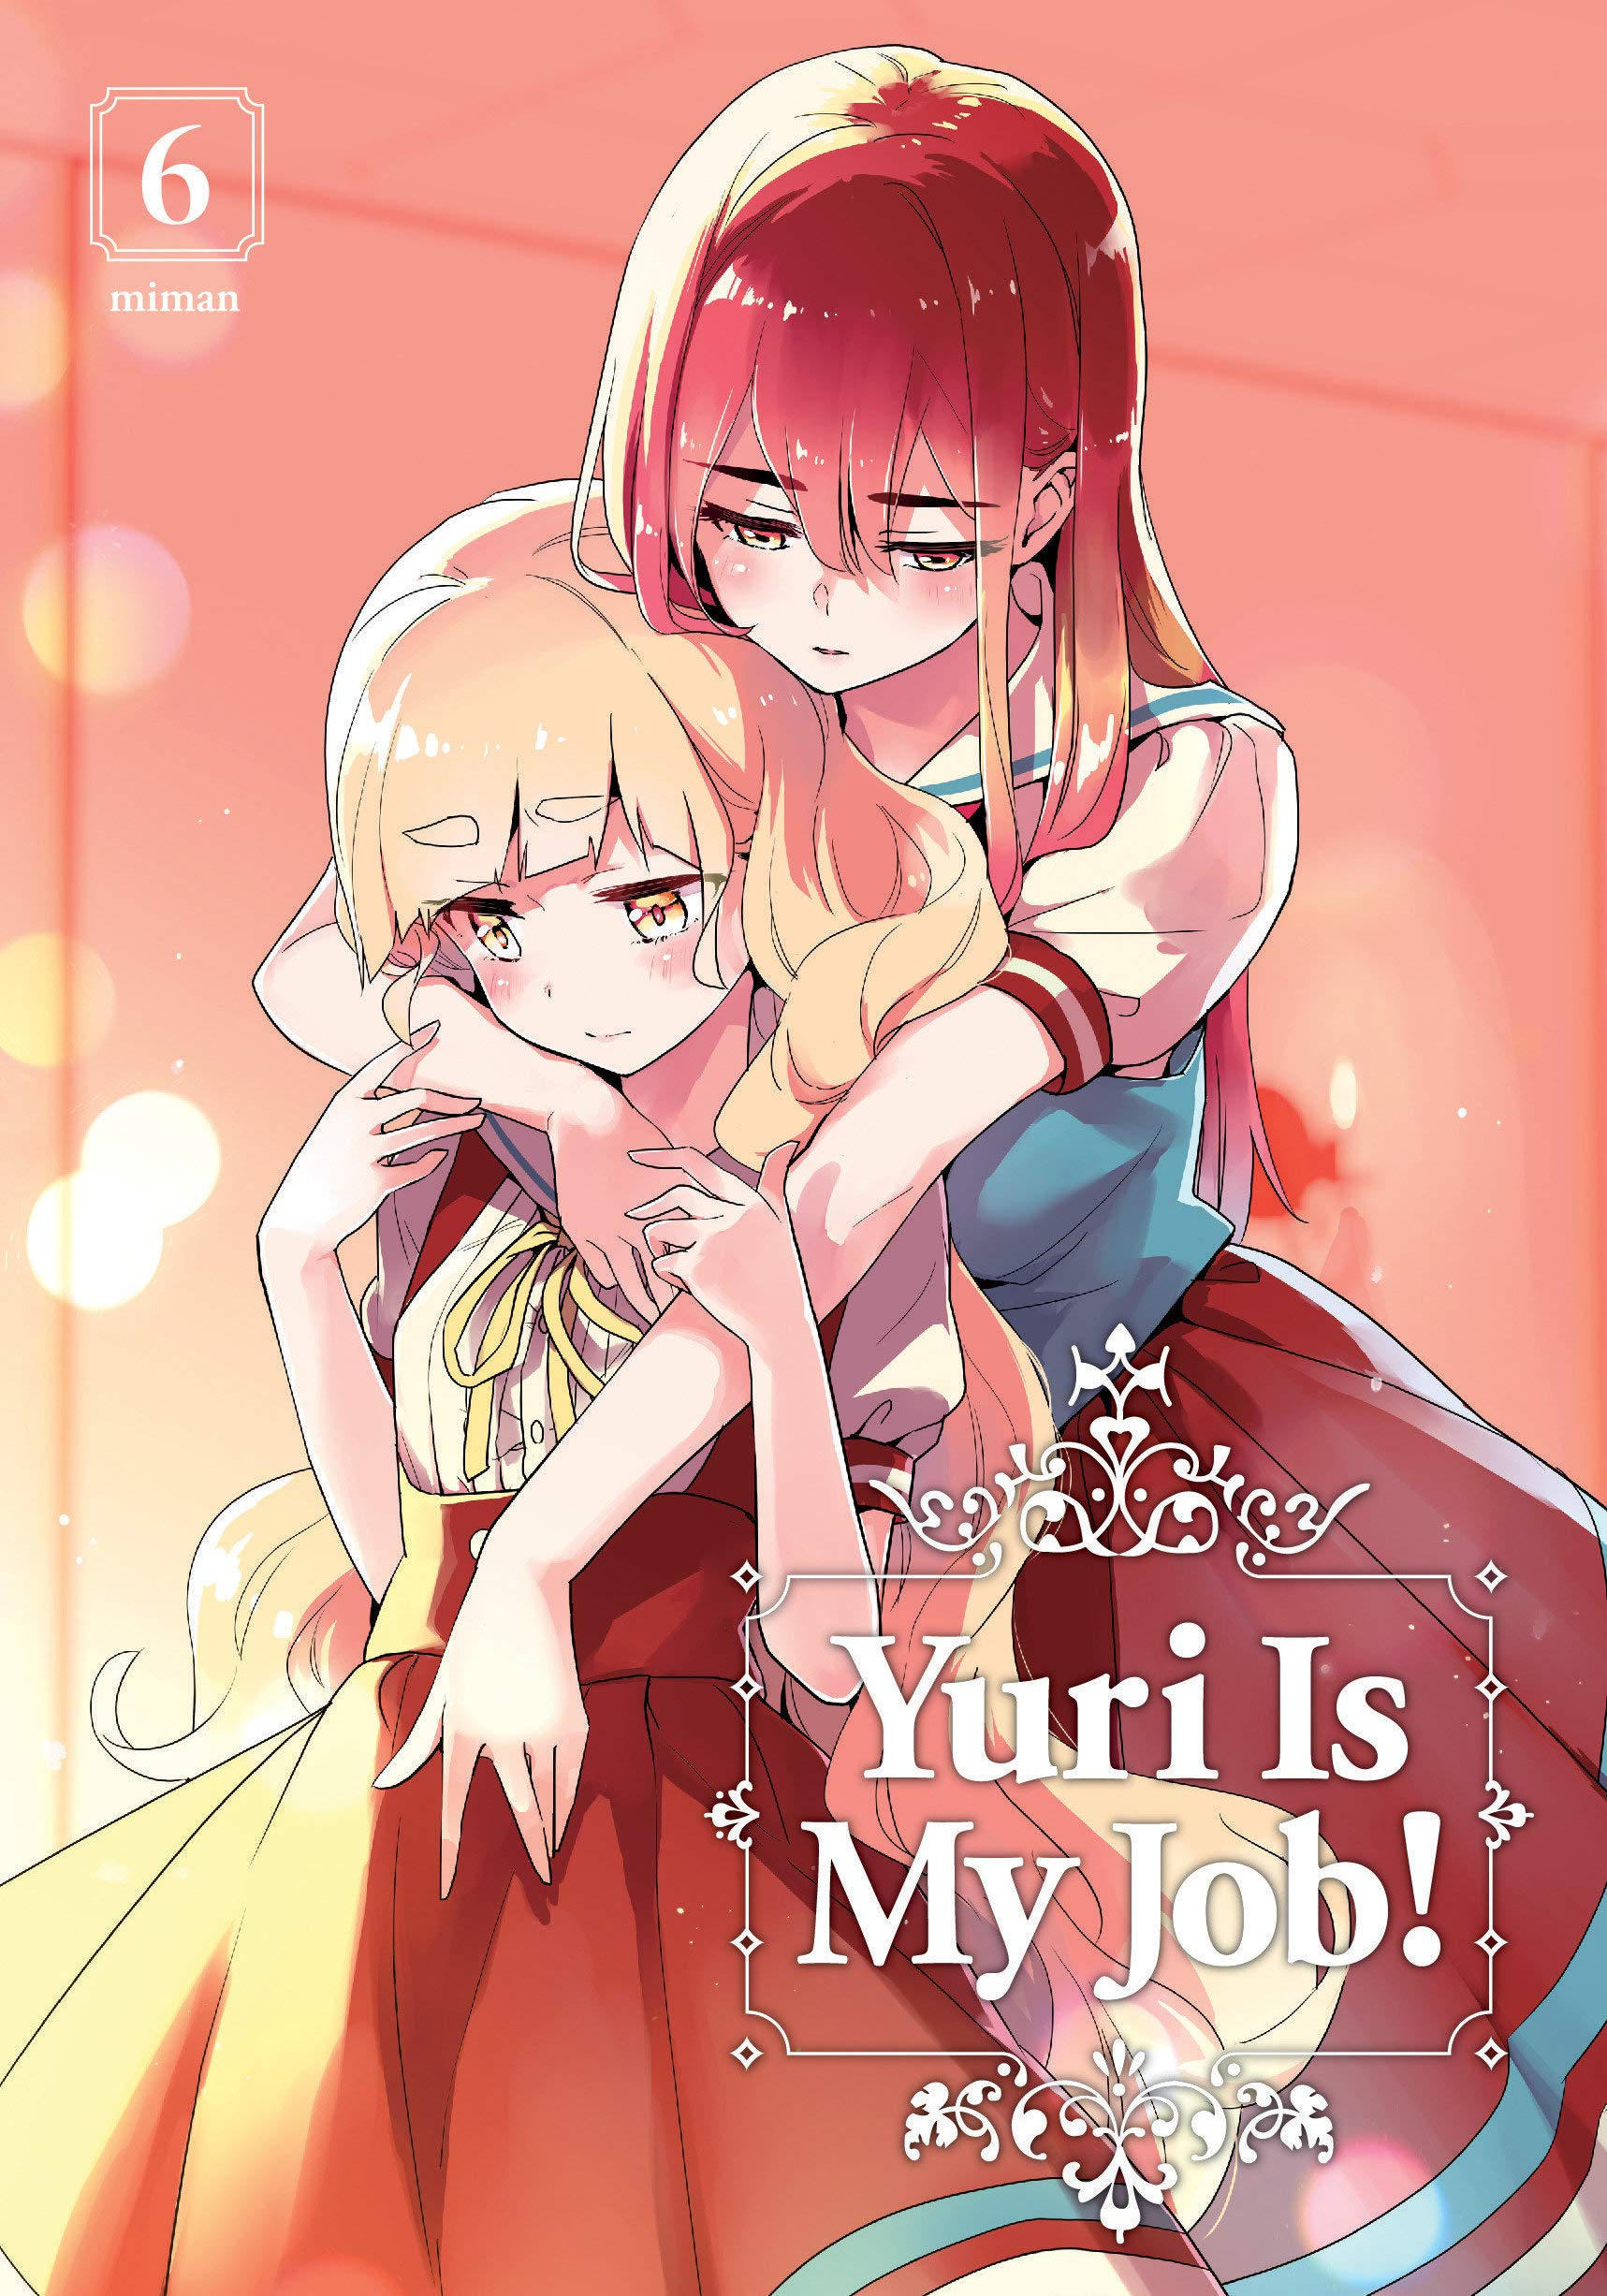 Featured image for Thoughts on Yuri Is My Job! Volume 6